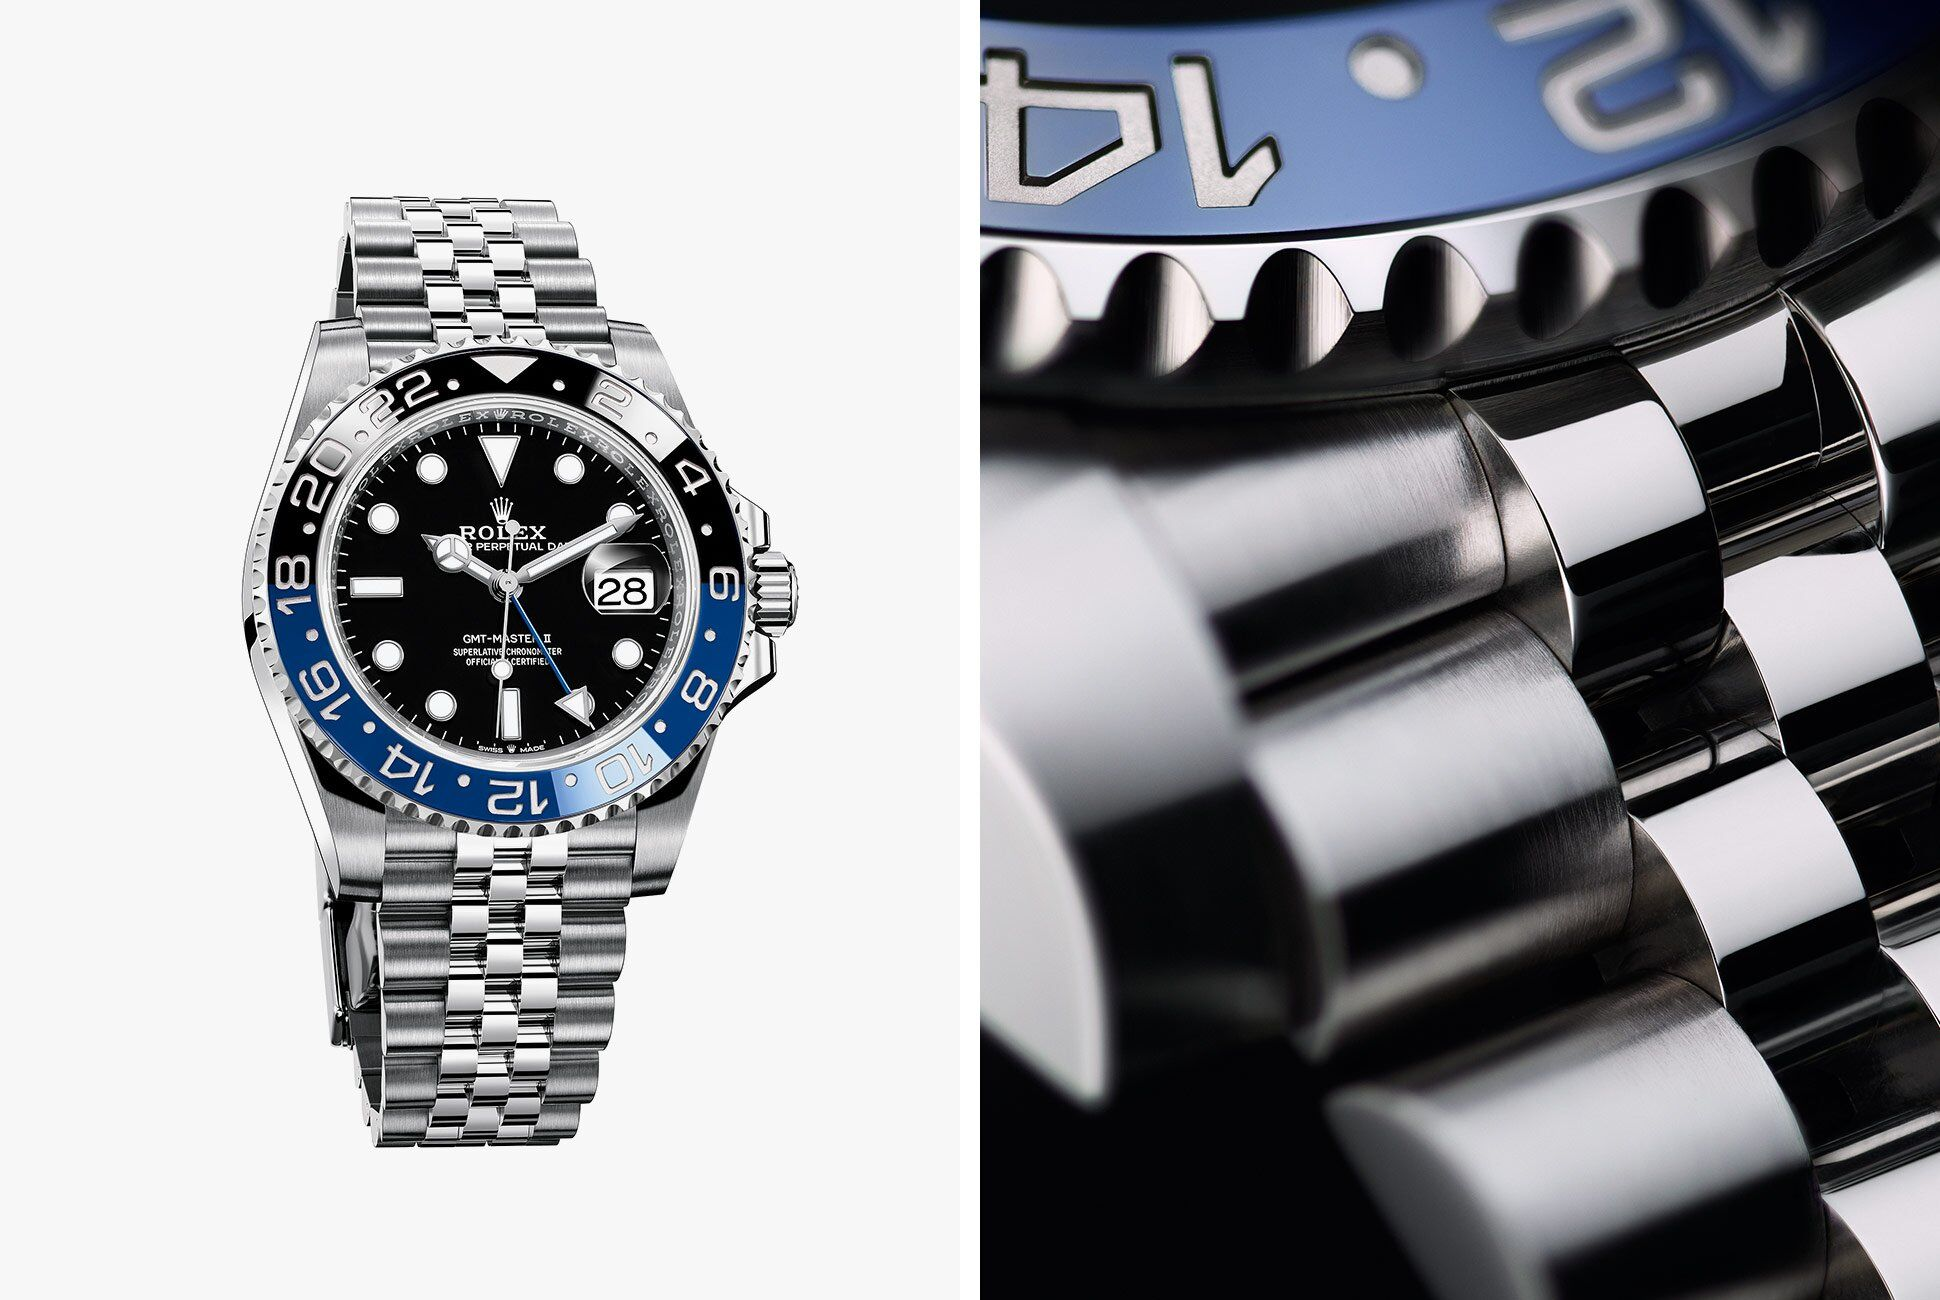 The 3 sport Rolex watches at Baselworld 2019 that everyone is talking about replica watches